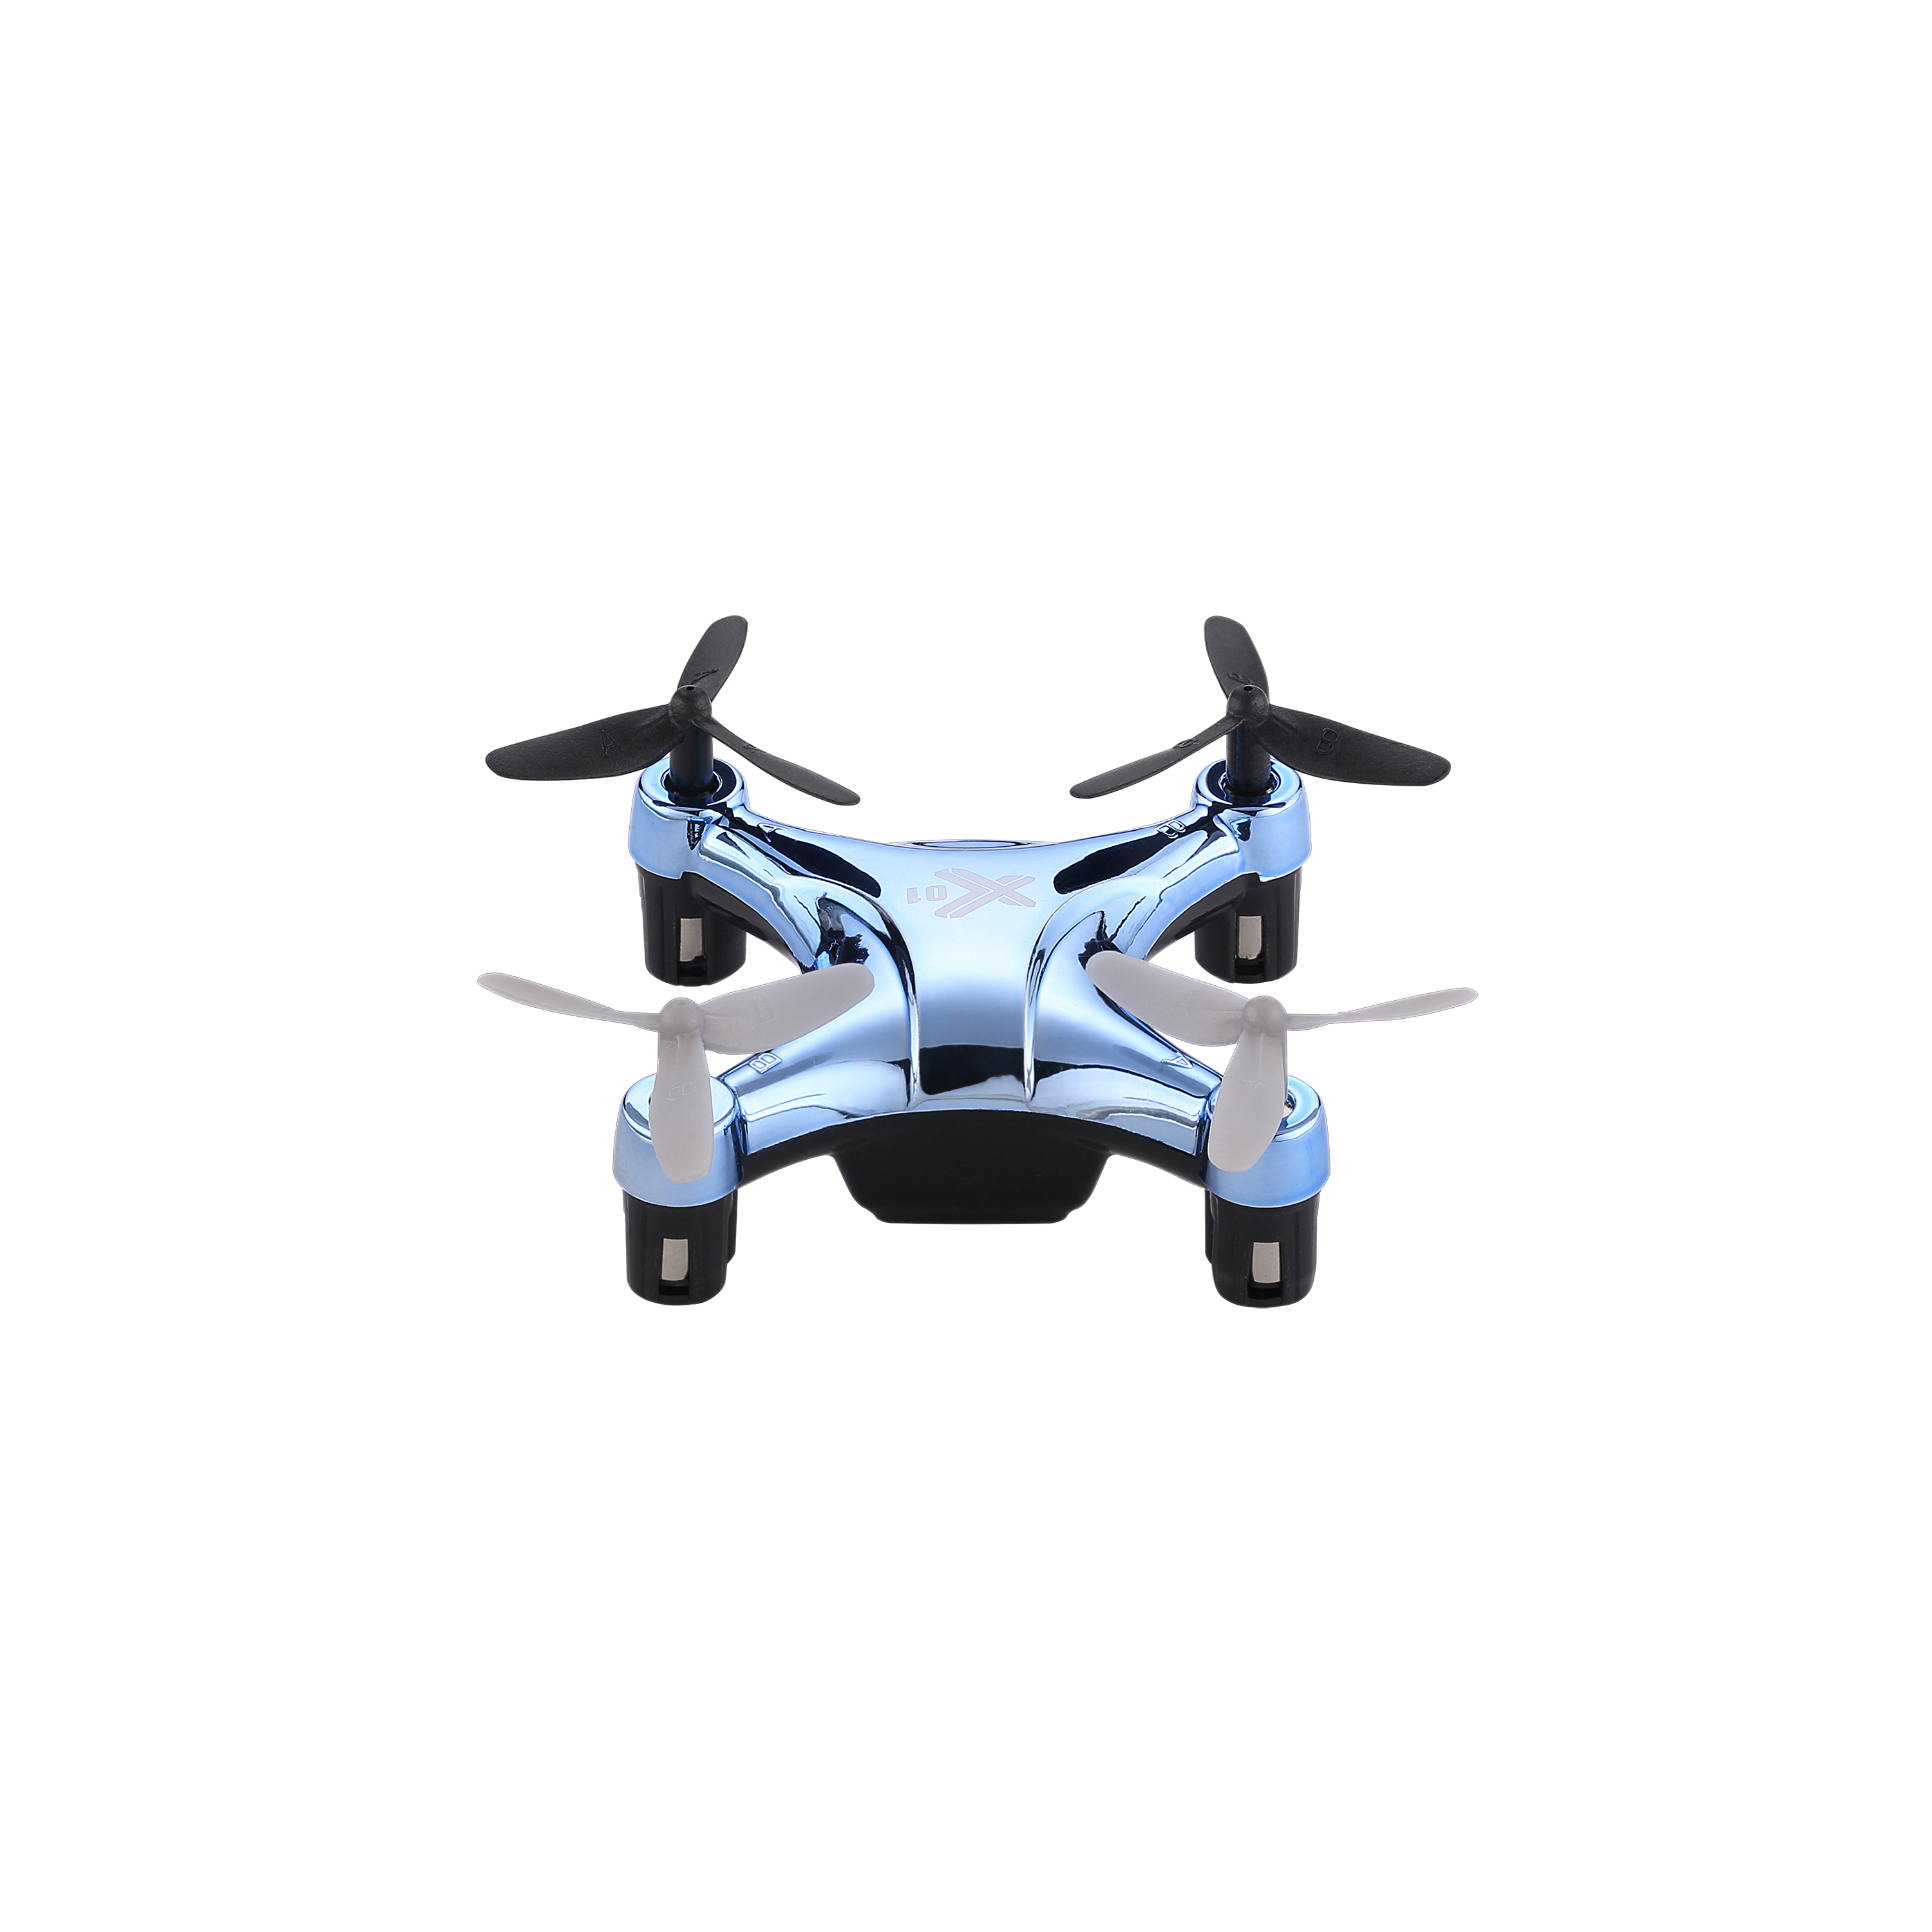 Sharper Image Drone Instructions Manual Appfaqs